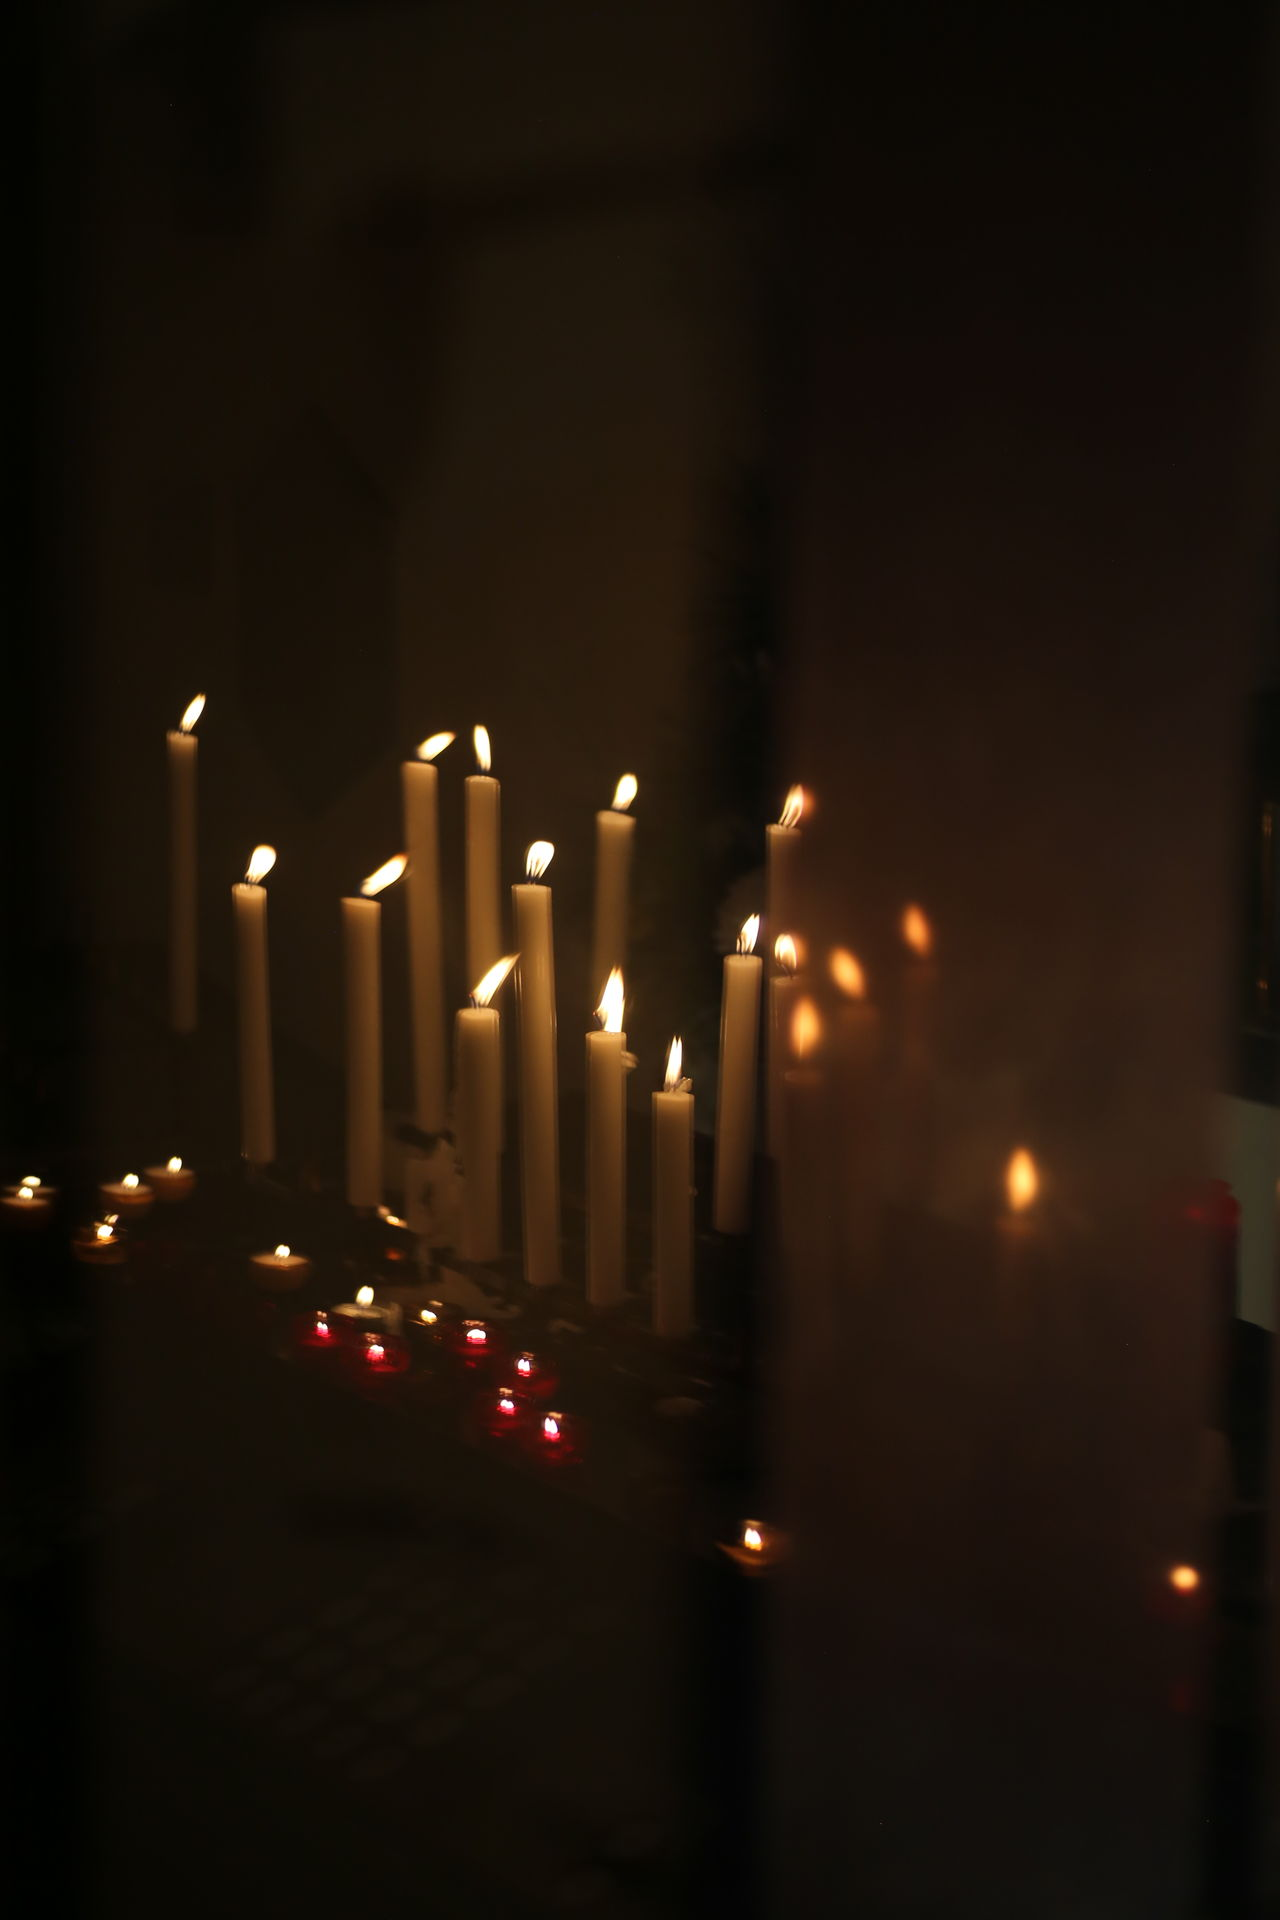 Burning Candle Flame Flickering Flickering Lights Glowing Heat - Temperature Illuminated Indoors  No People Worship